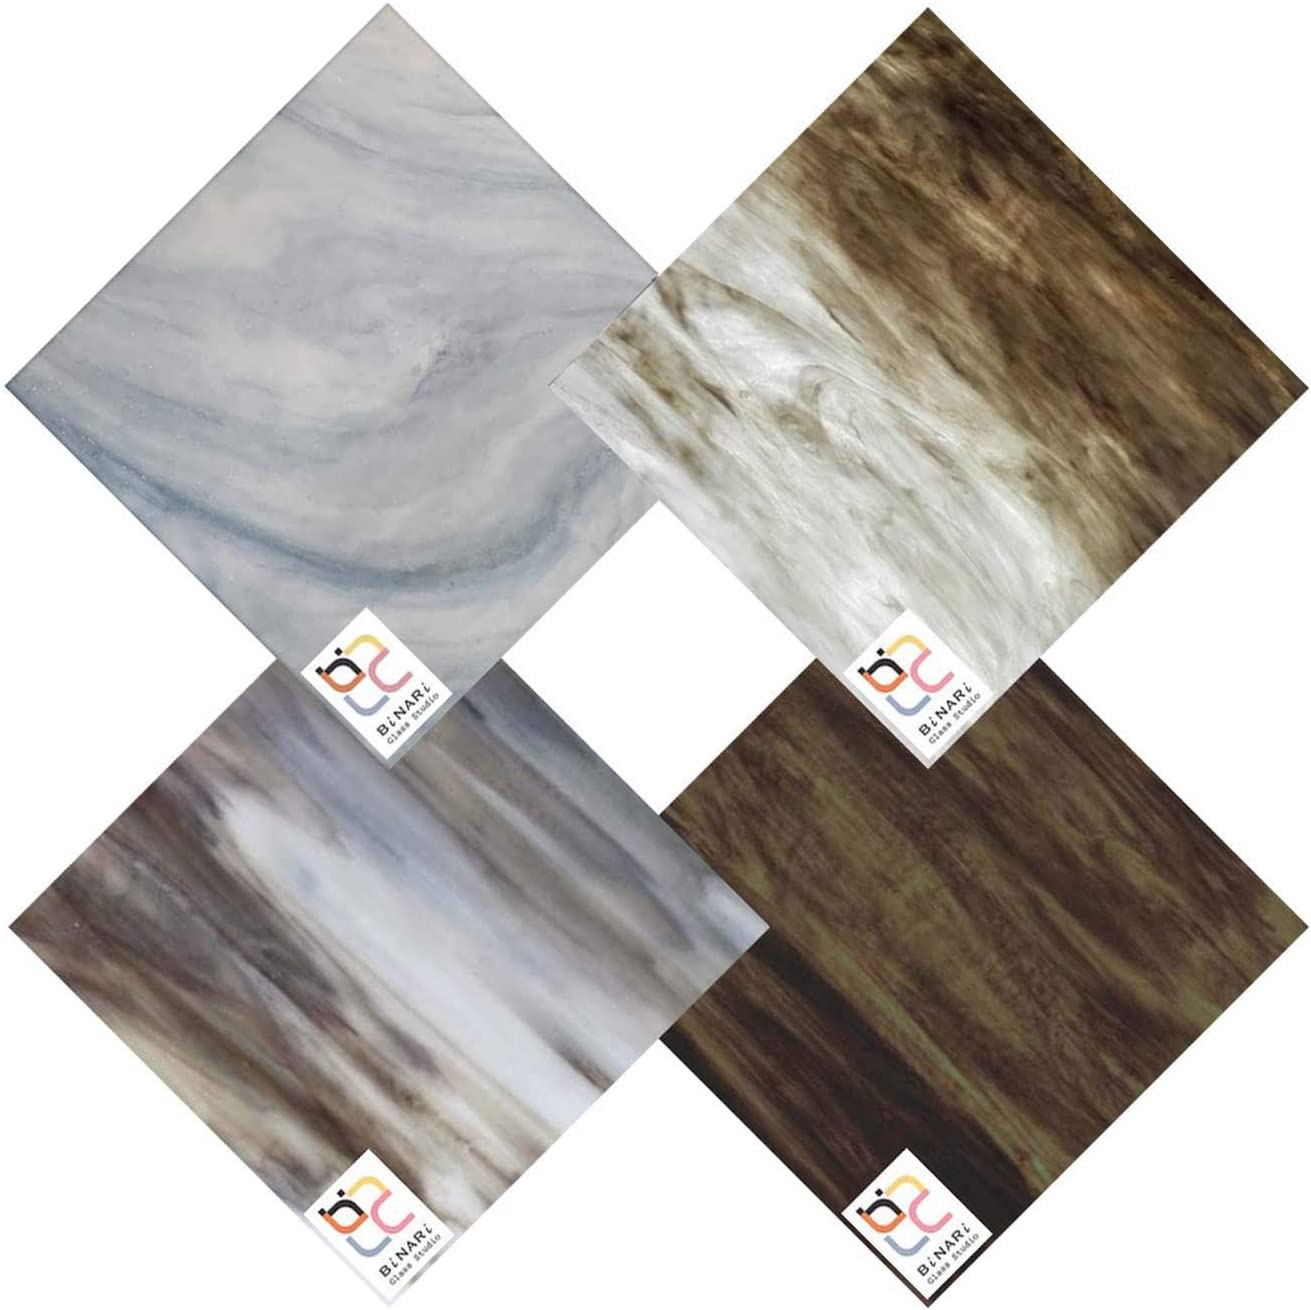 SEAL limited product Wissmach 4 Sheet Mixed Color Stained Brown Variety Glass Portland Mall Pack